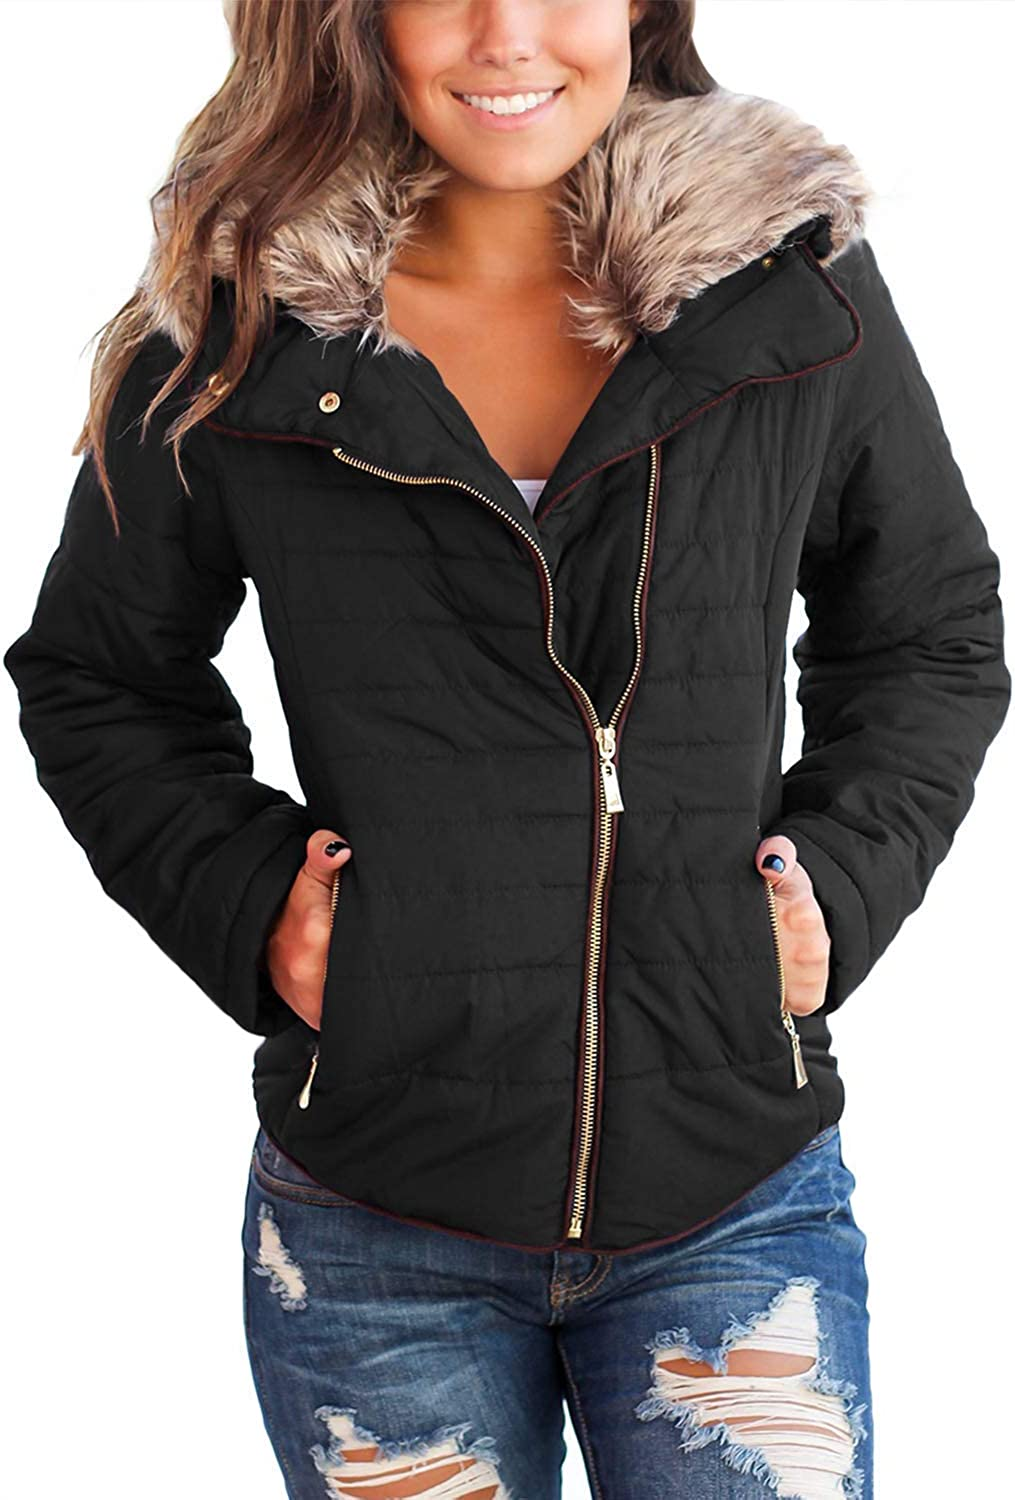 Kulee Womens Soft Faux Fur Collar Zip Up Quilted Jacket Coat Lightweight Outerwear